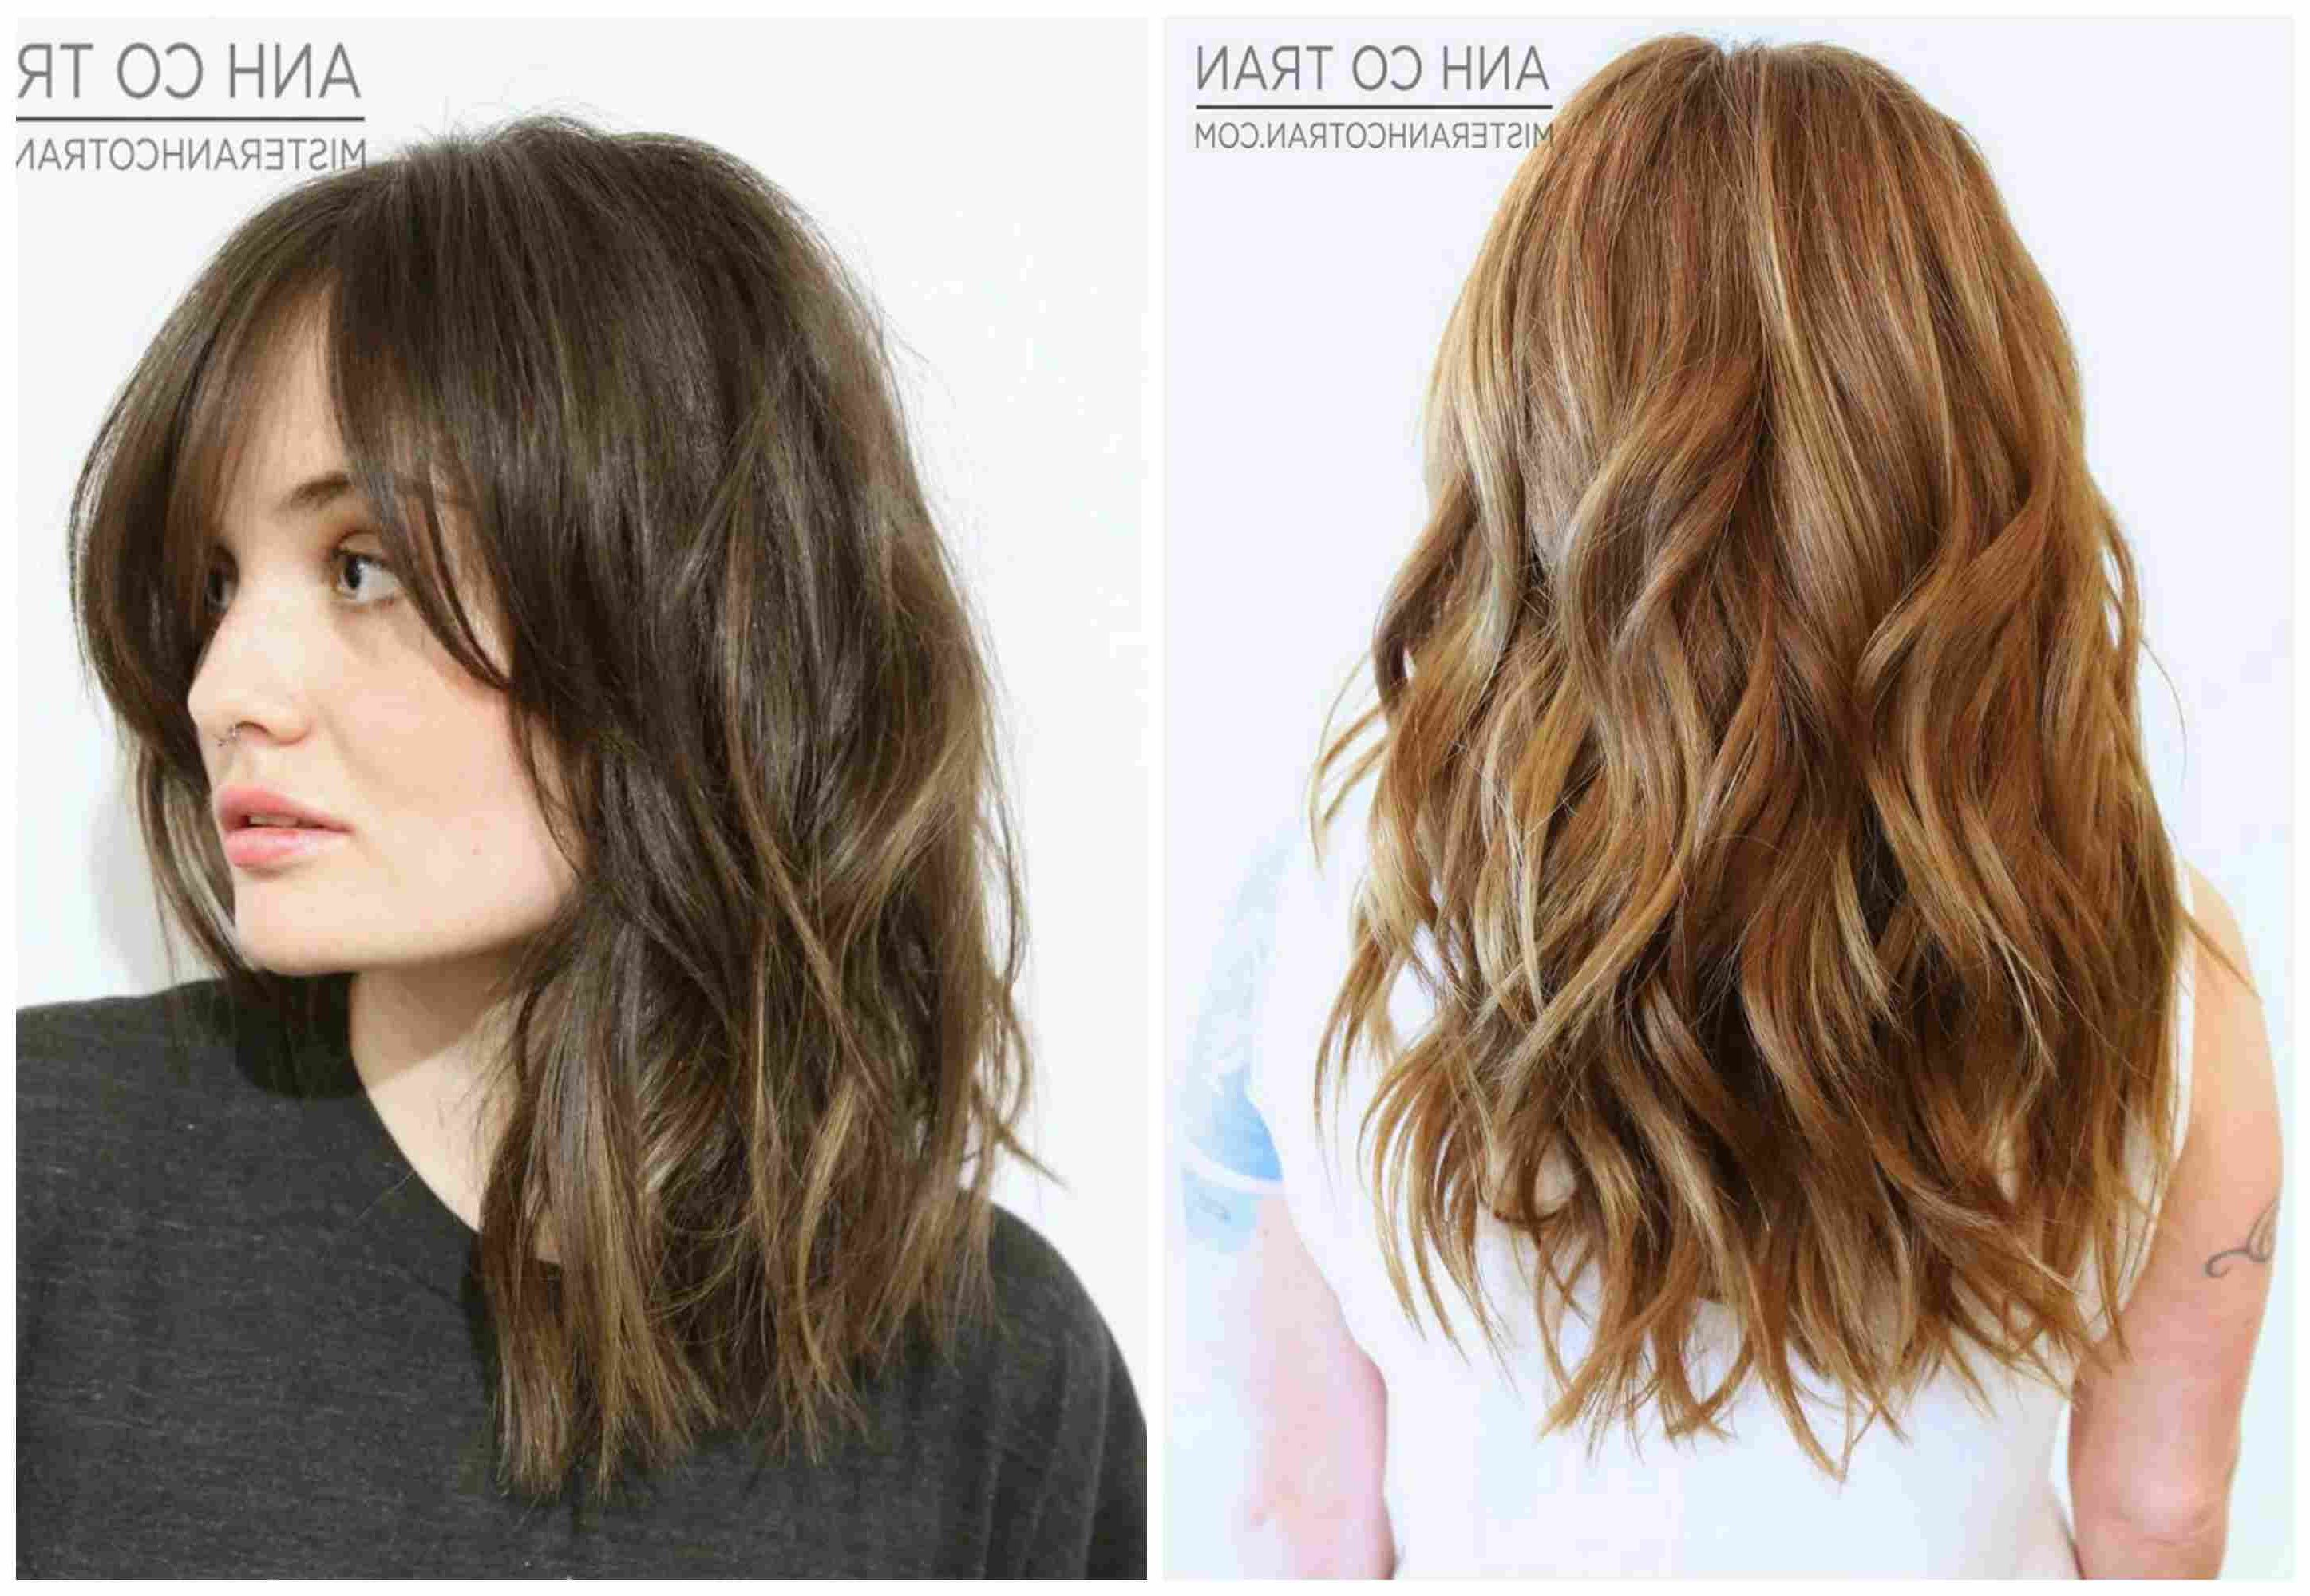 Long Wavy Hair: The Best Cuts, Colors And Styles Inside Newest Long Layered Waves Hairstyles (View 13 of 20)